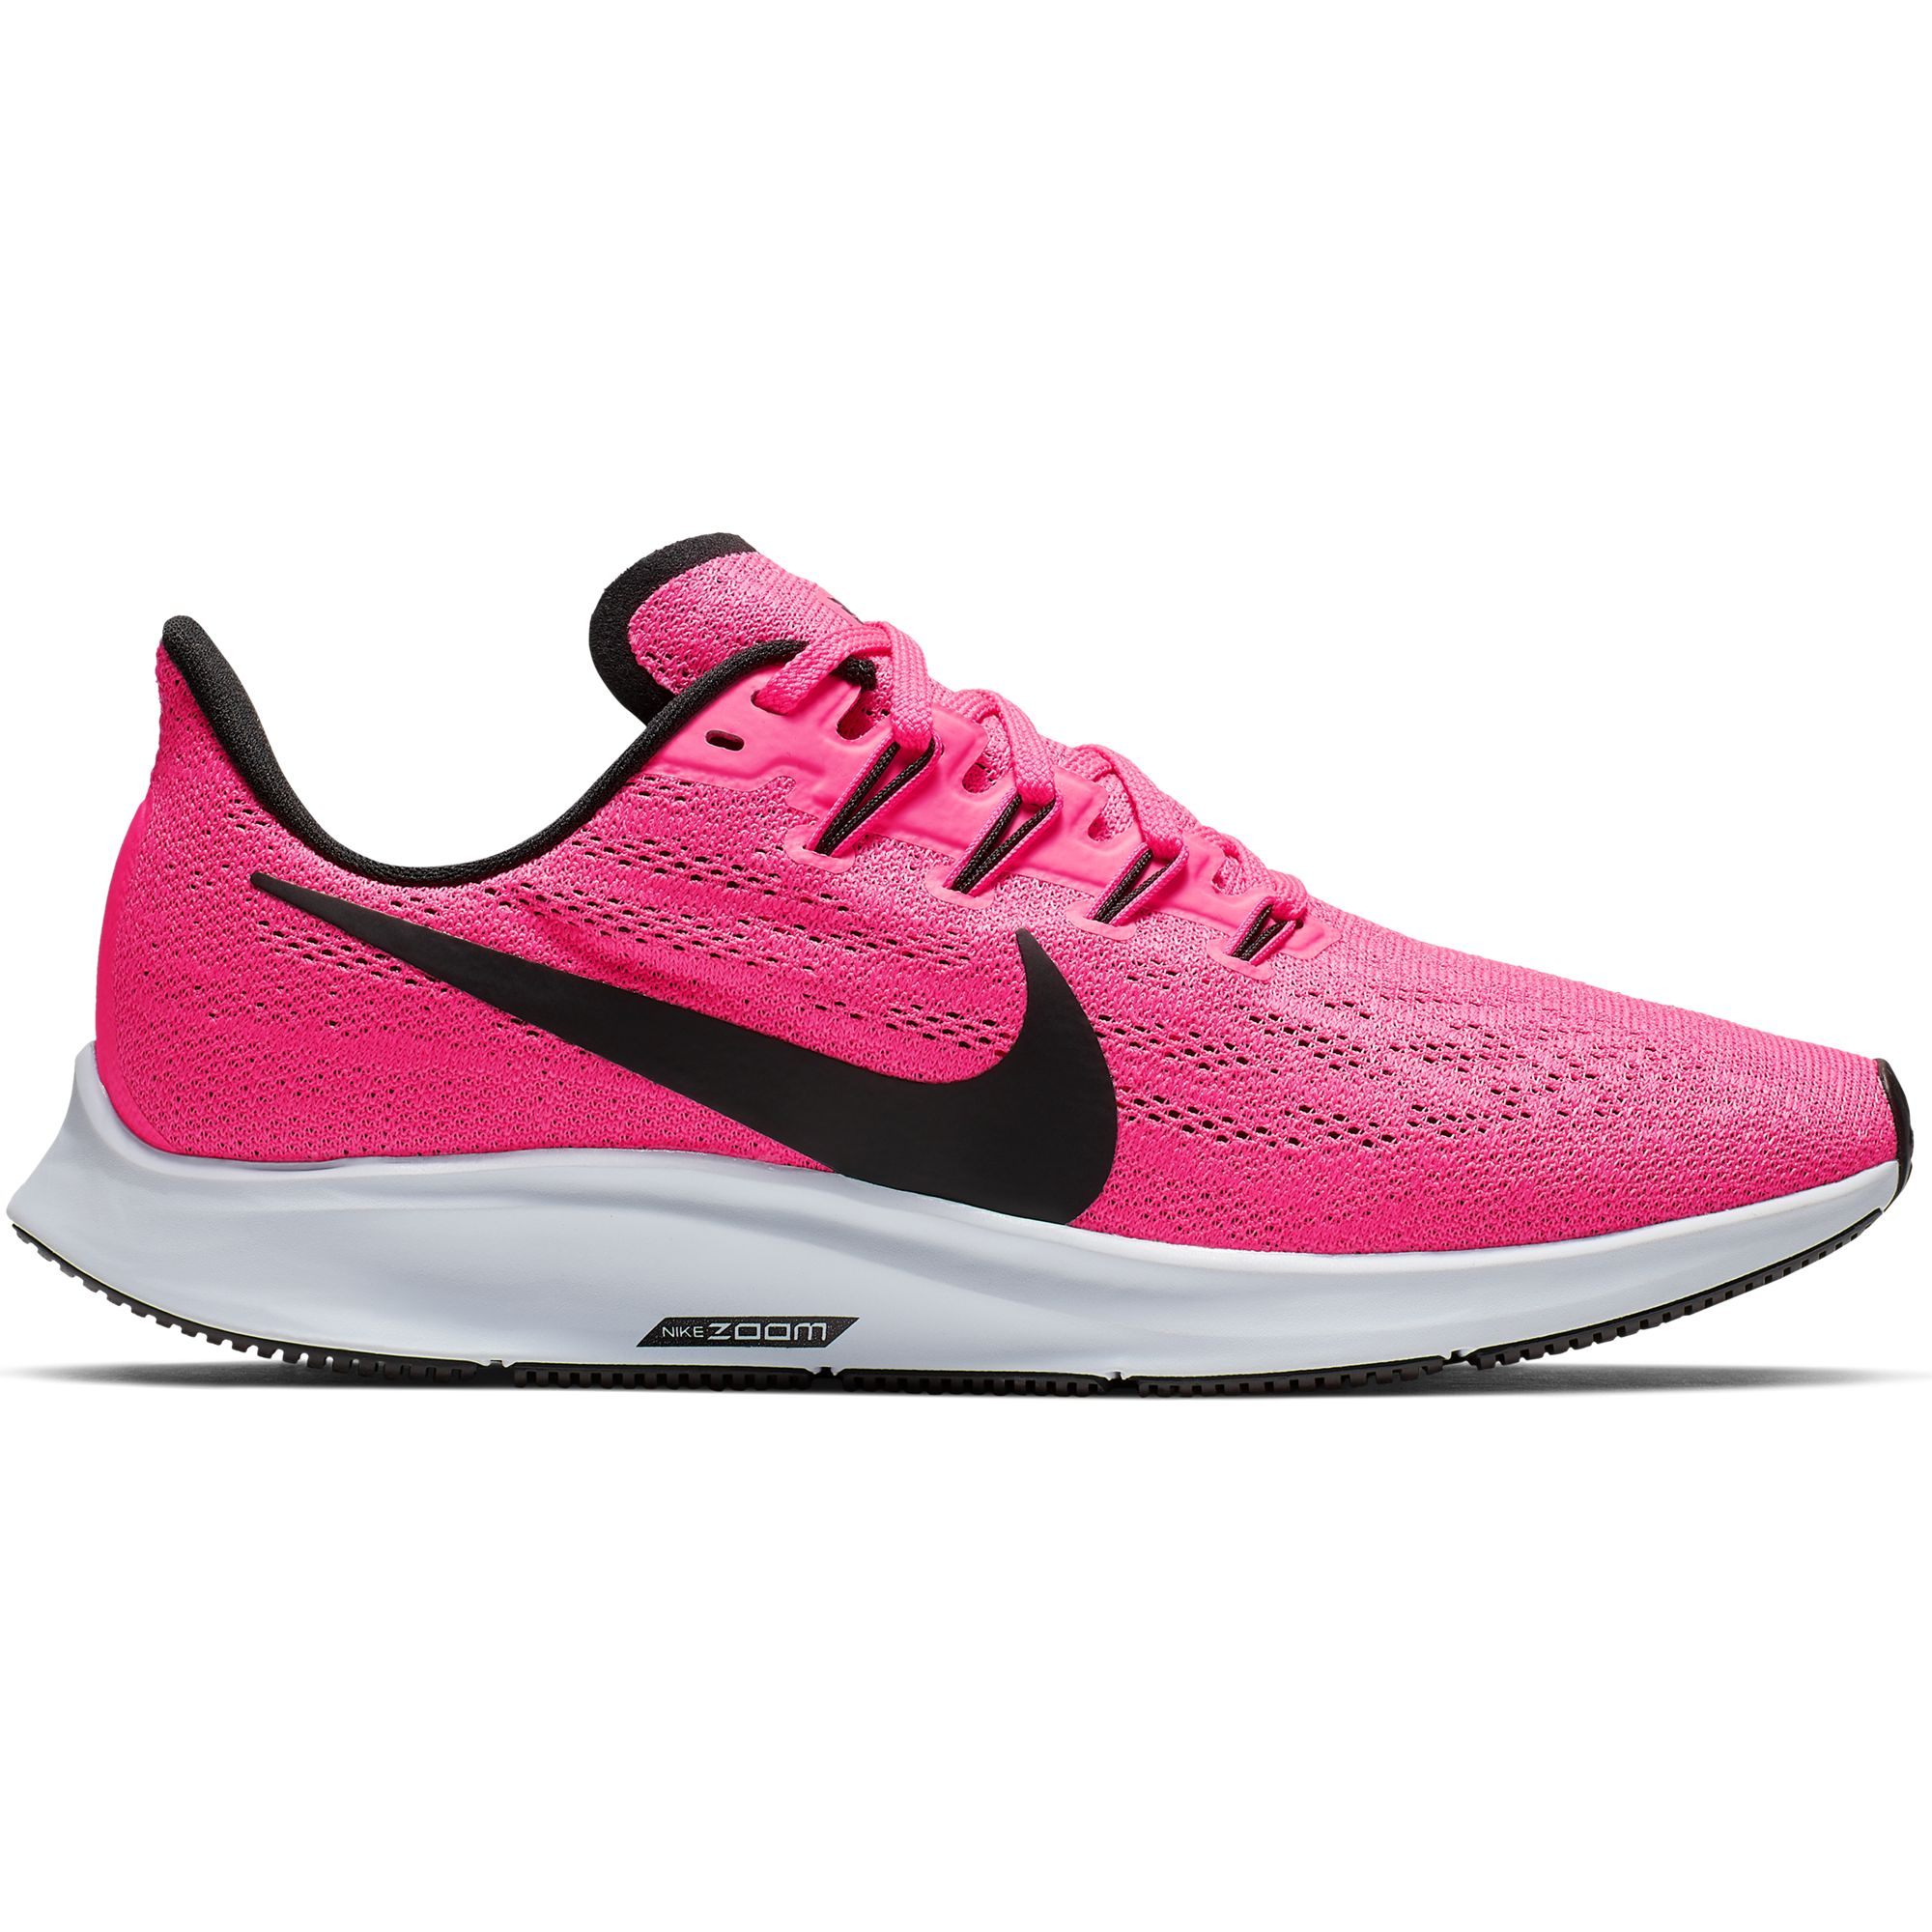 grand choix de 101ba 9cd54 WMNS NIKE AIR ZOOM PEGASUS 36